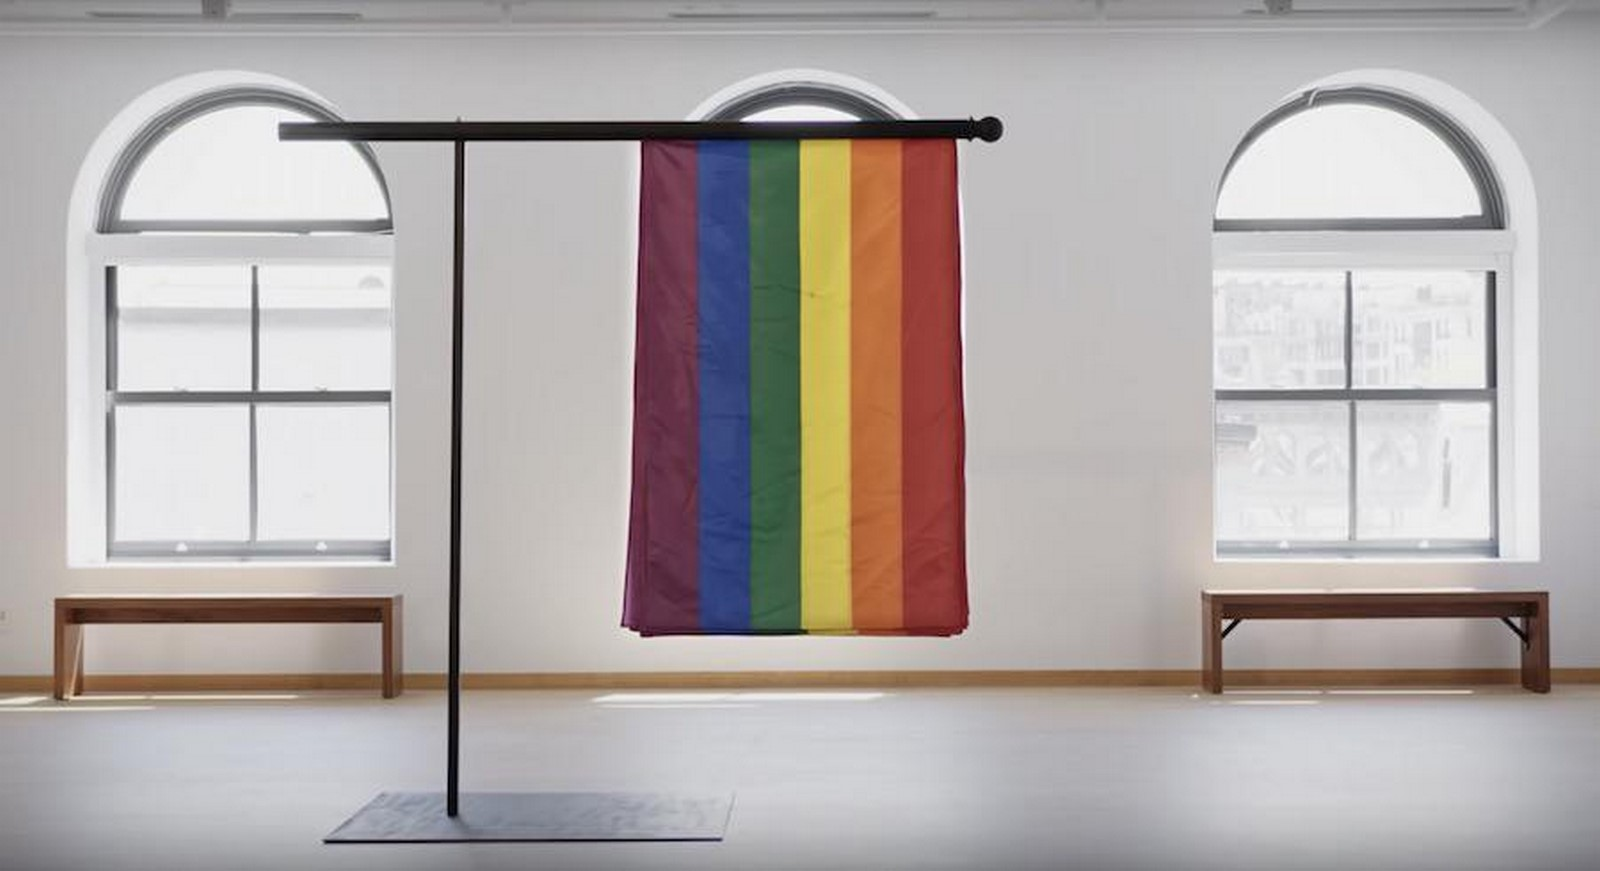 9 Designs Advocating For LGBT Equality - Sheet1